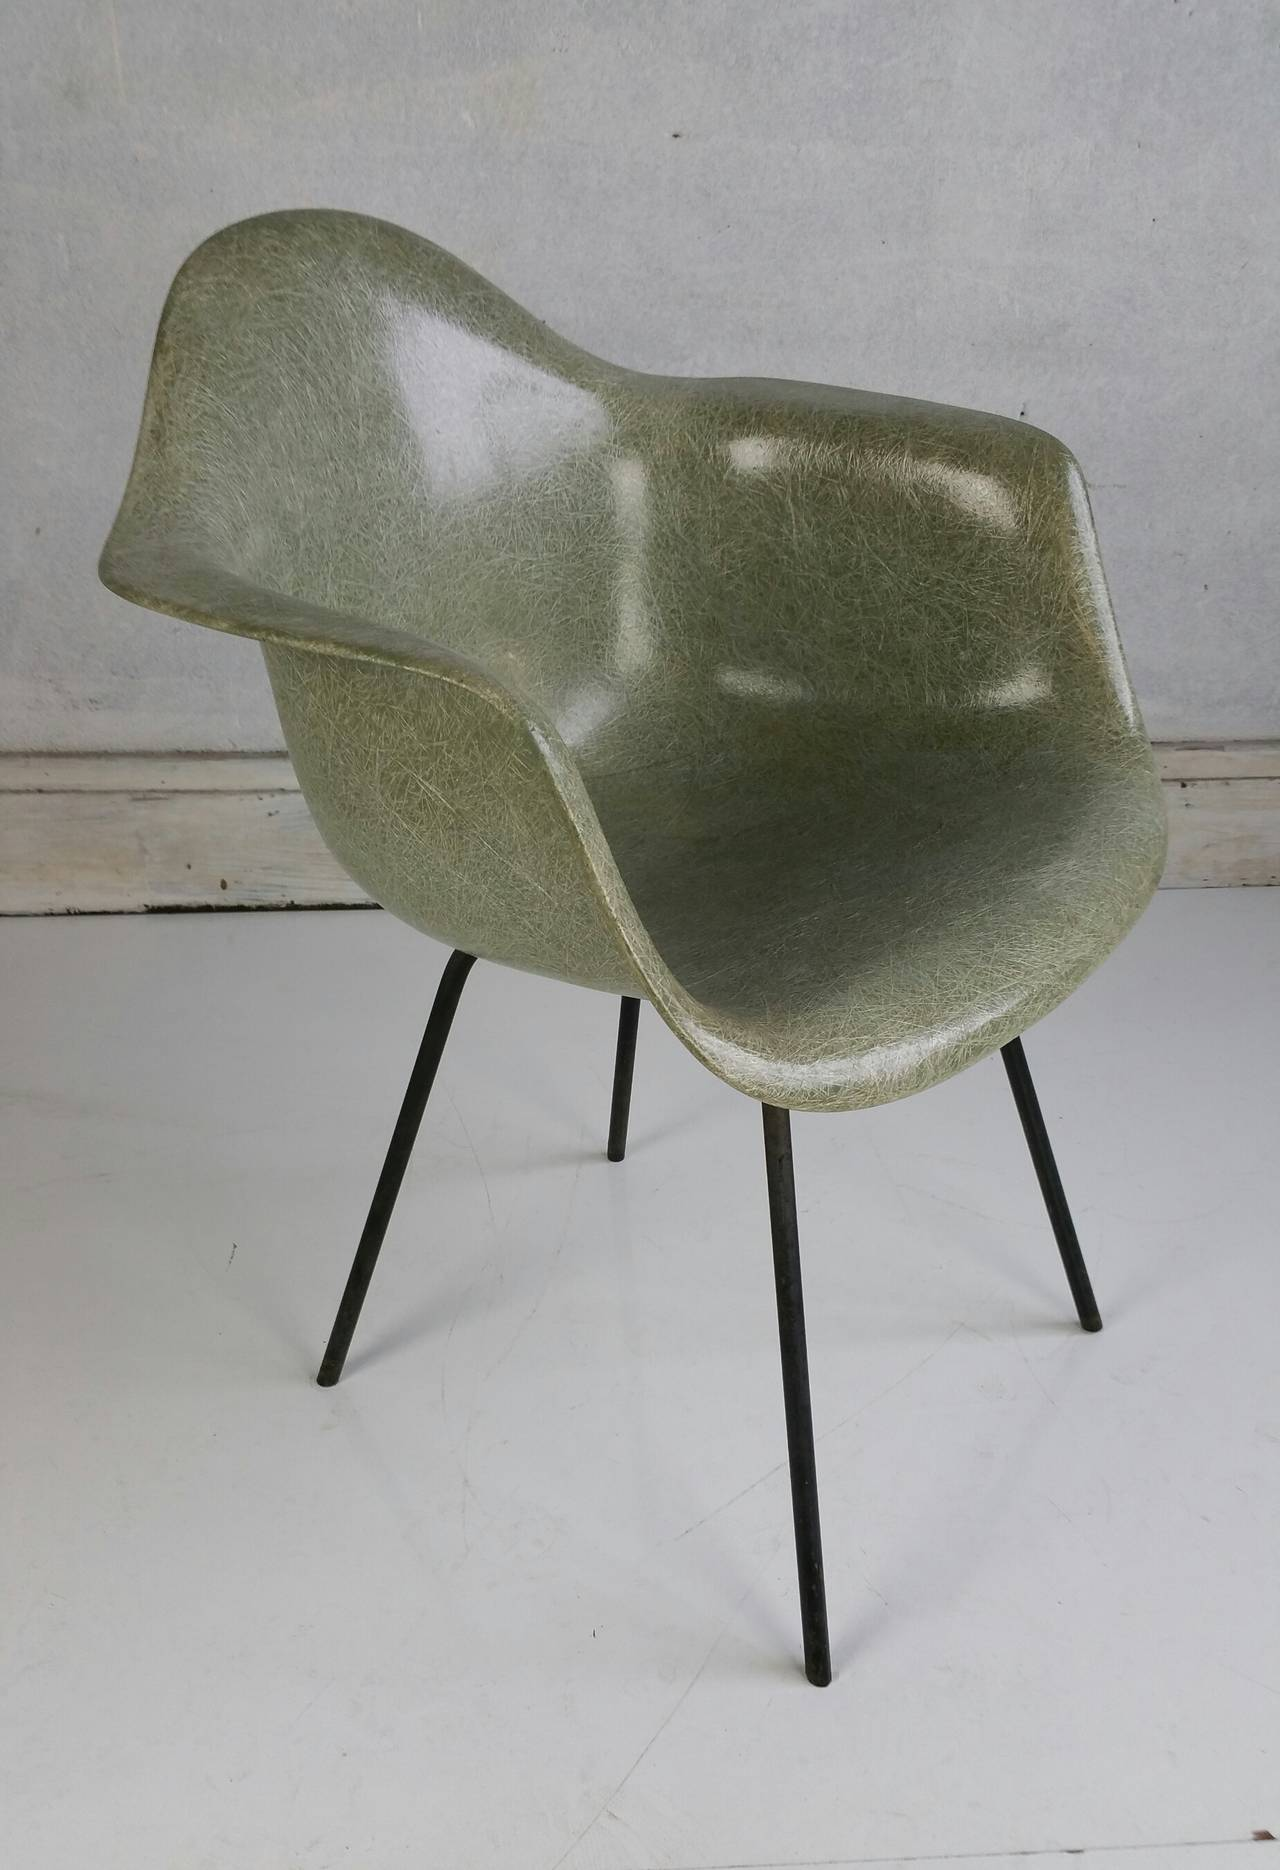 Seafoam Green Charles Eames Arms Chair Second Year Production